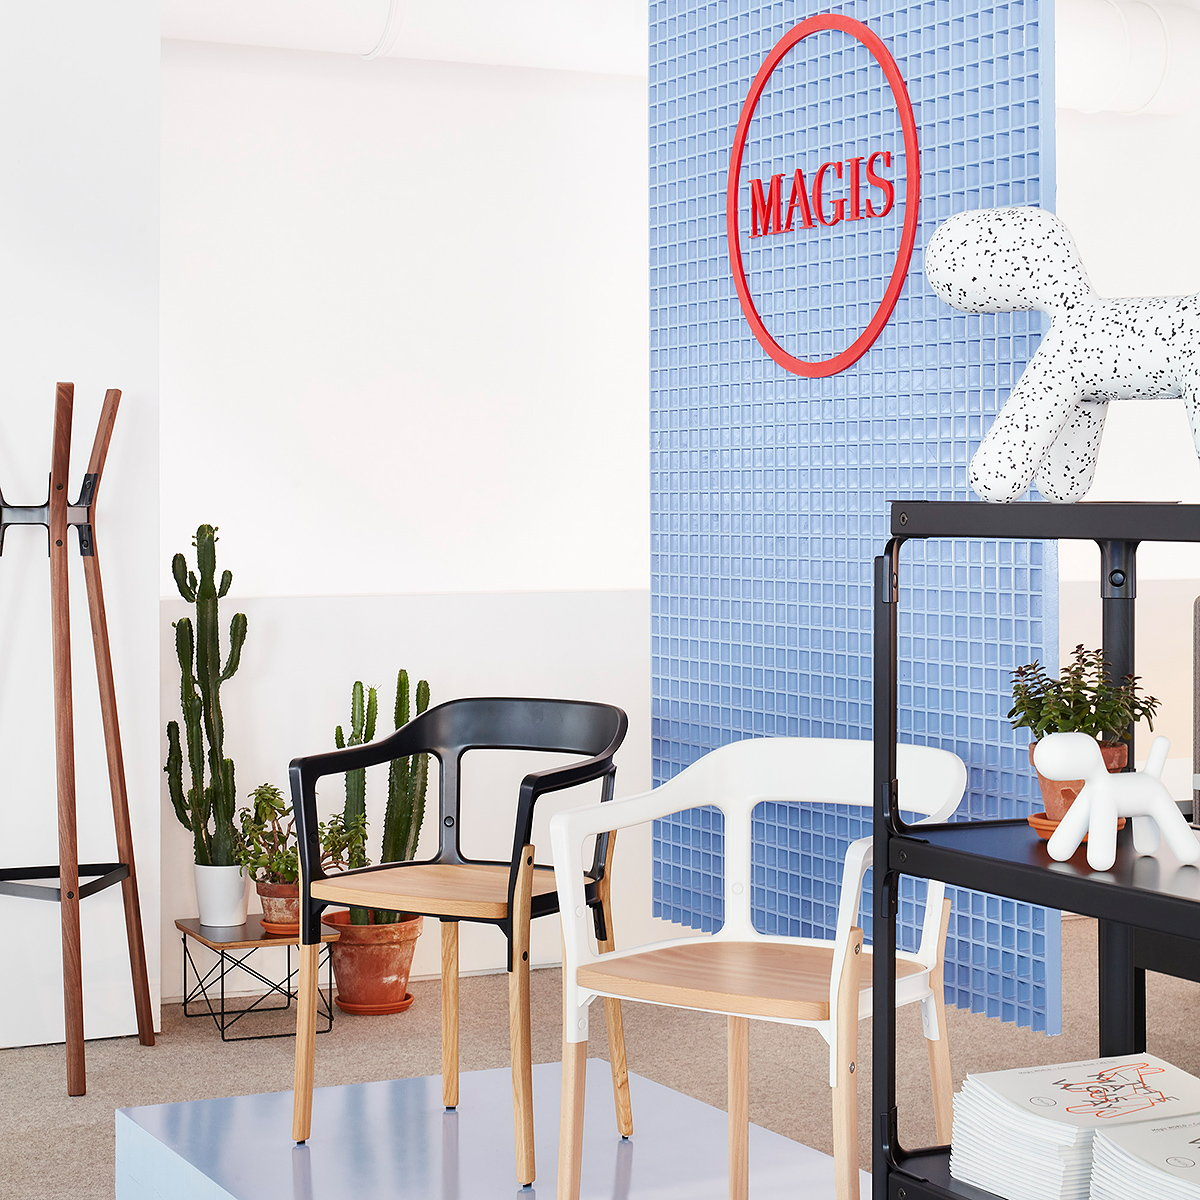 The Magis Way - Magis Opens Pop-Up at Herman Miller NYC Flagship